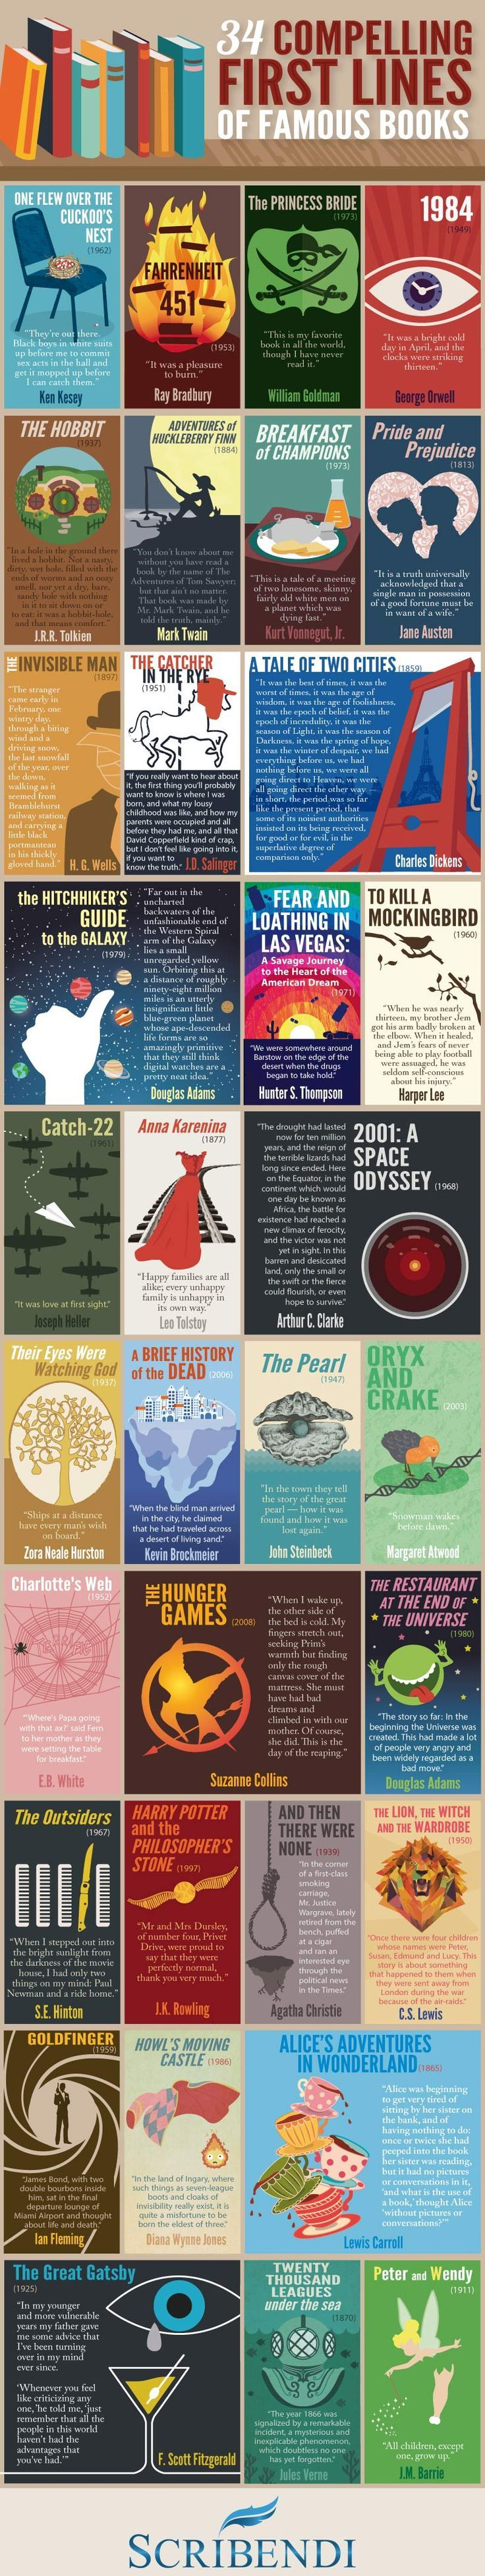 The first lines of a story set the mood and draw readers in. This infographic features first lines from some of the most famous books of all time.